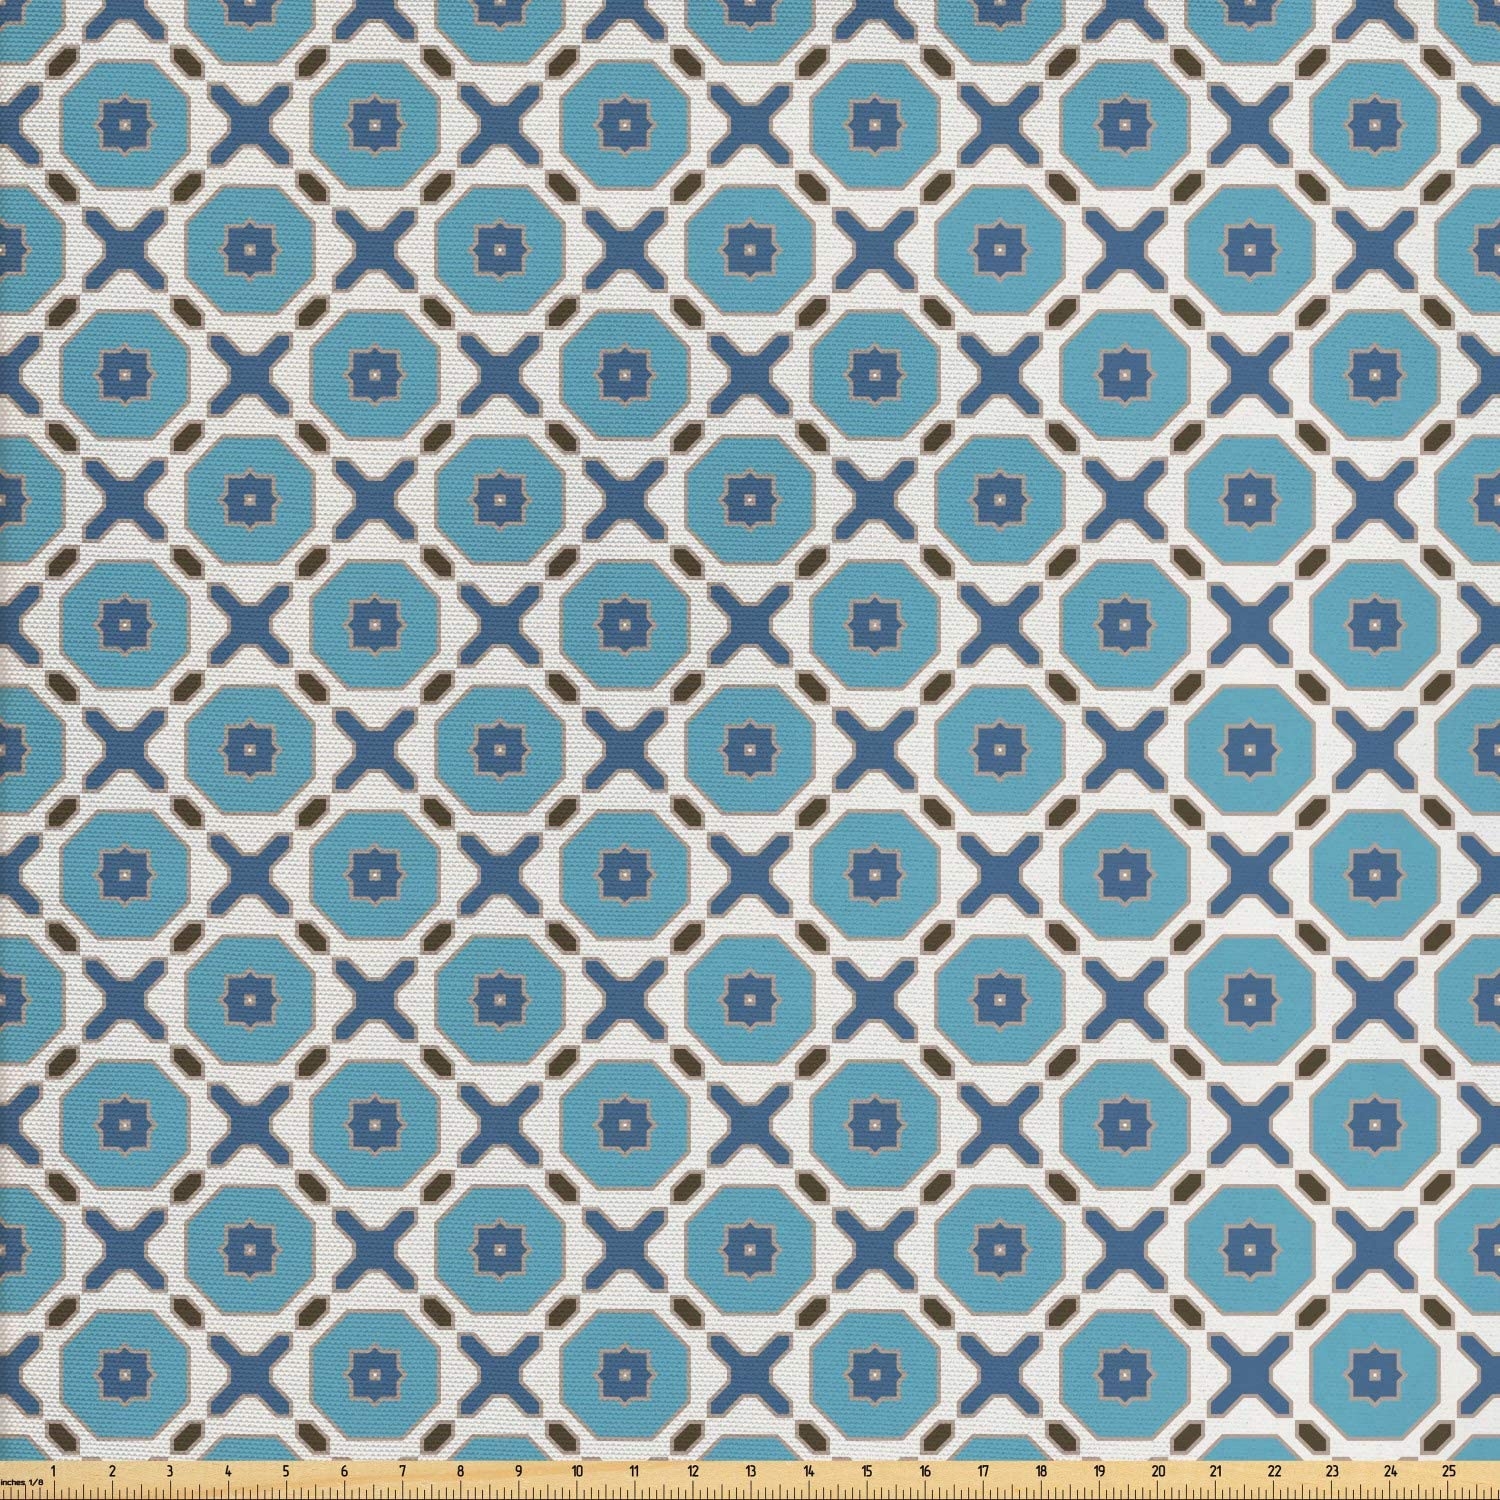 Ambesonne Geometry Fabric by The Yard, Retro Style Mosaic Tiles Inspired Natural Sky Tones, Decorative Fabric for Upholstery and Home Accents, 1 Yard, Coconut Cadet Blue